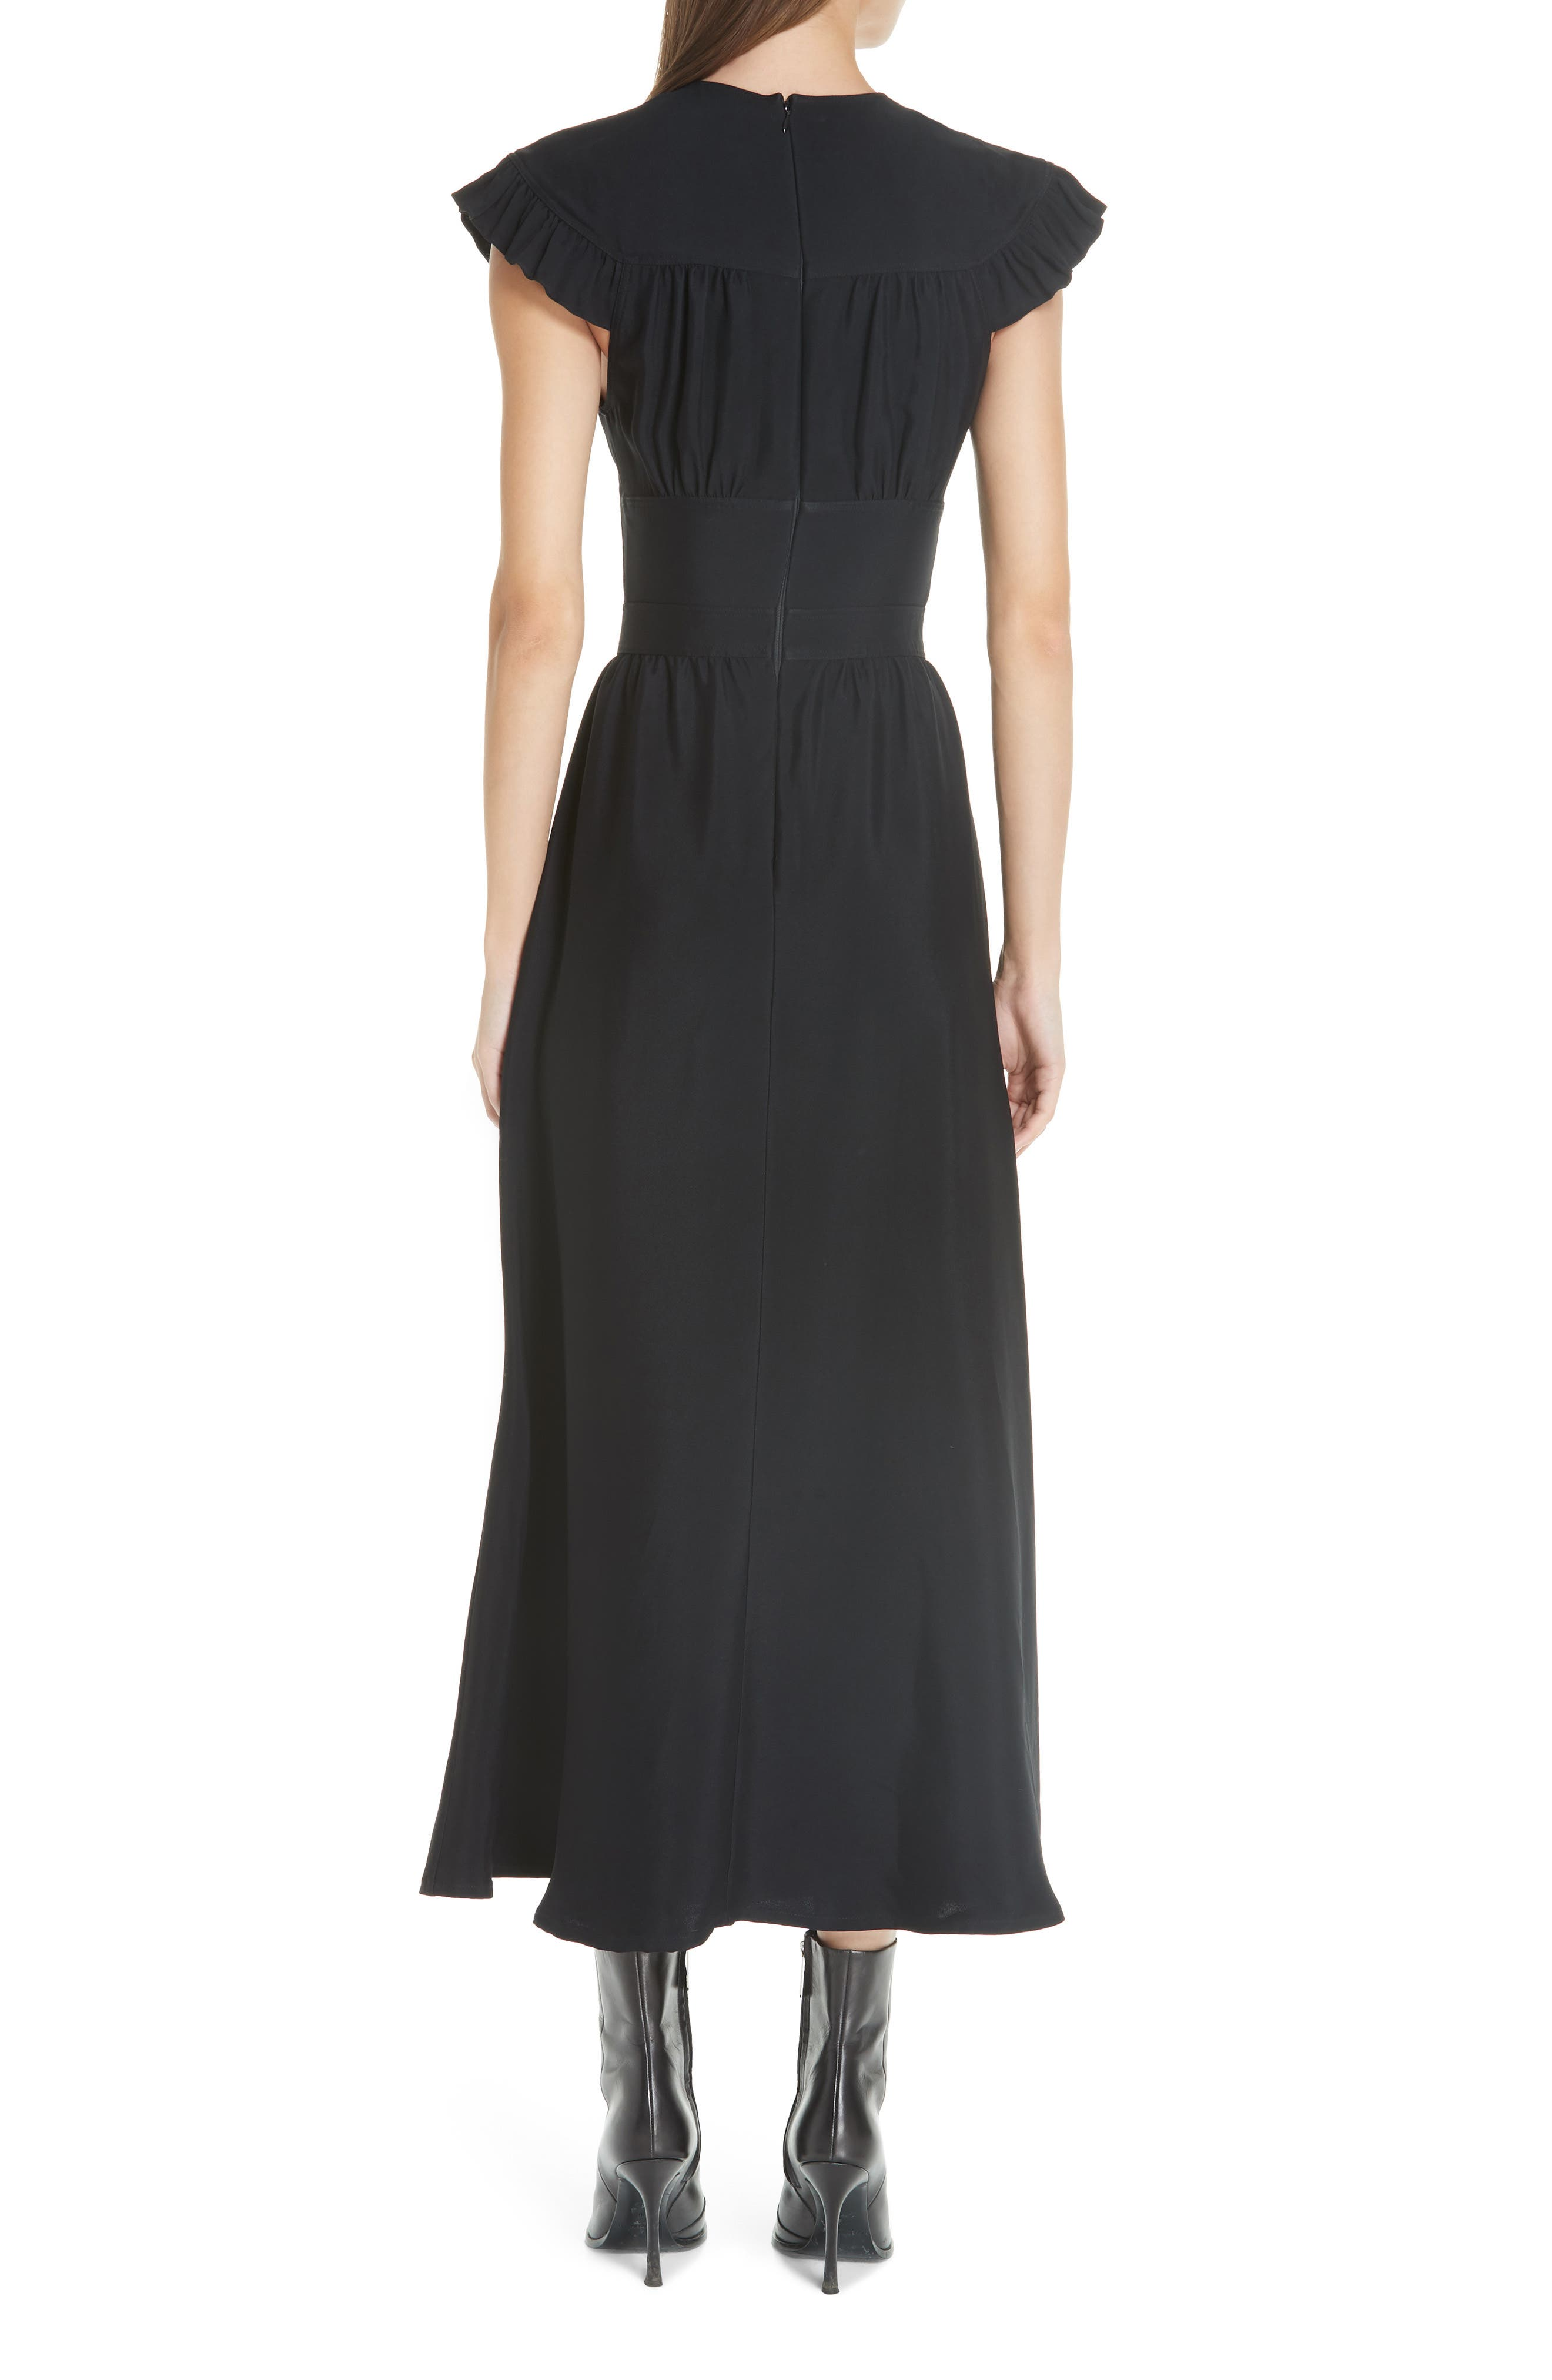 Cady Ruffle Pioneer Dress,                             Alternate thumbnail 2, color,                             BLACK